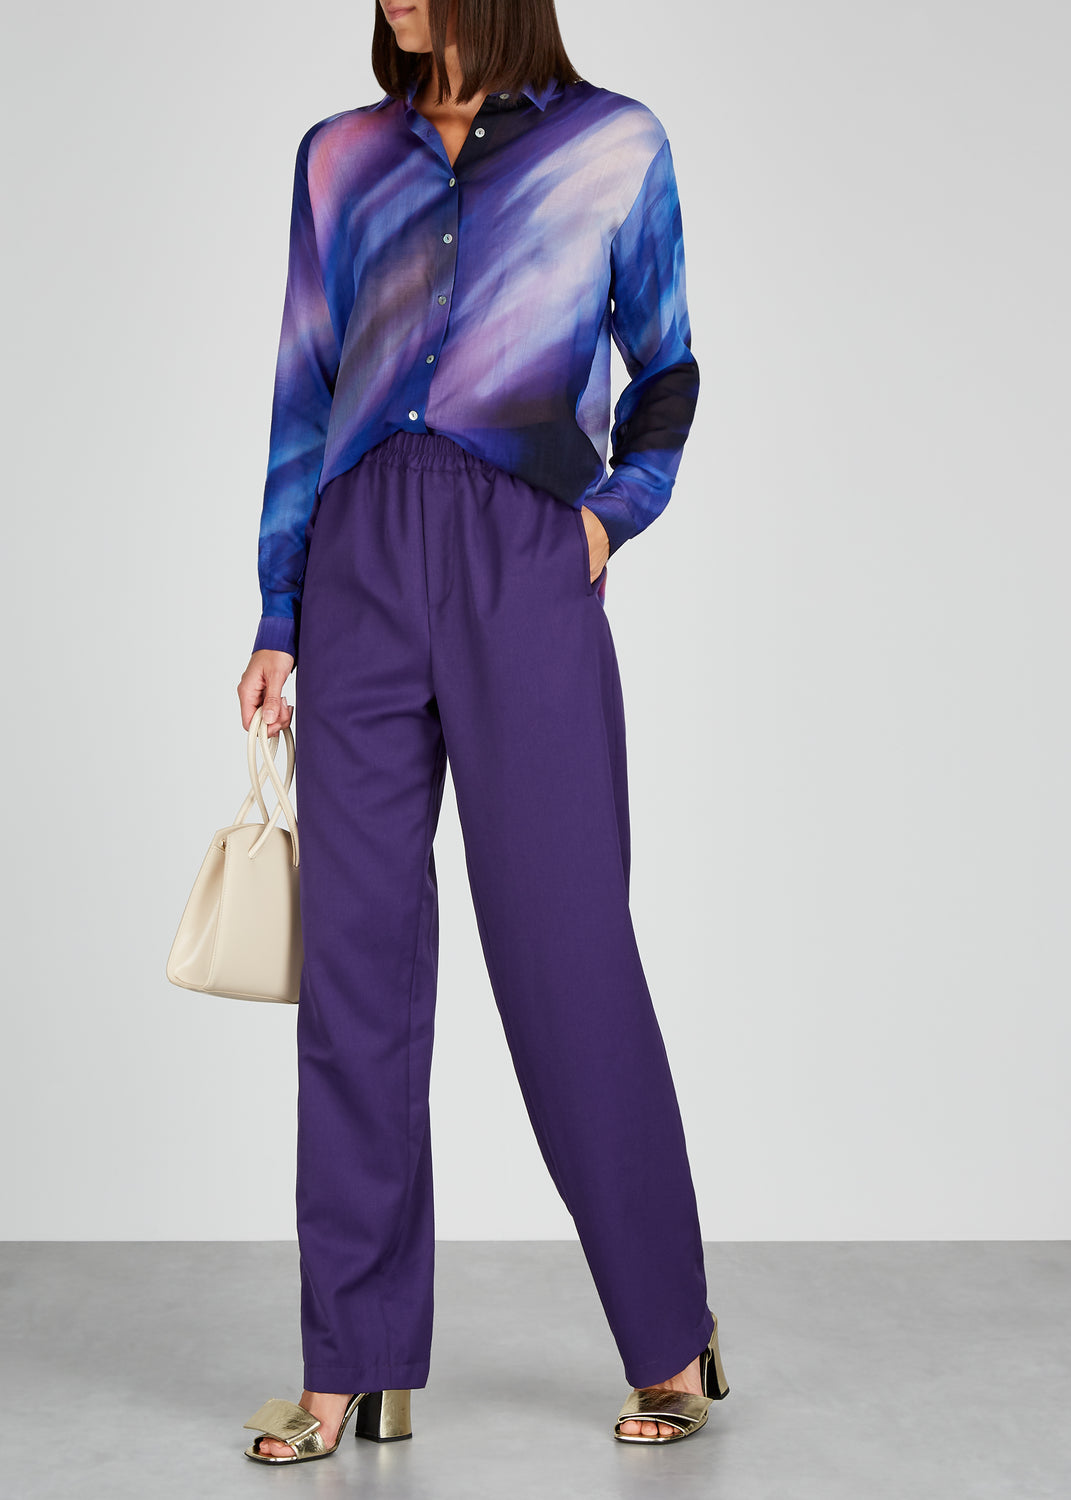 AWAYTOMARS X Woolmark purple straight-leg trousers